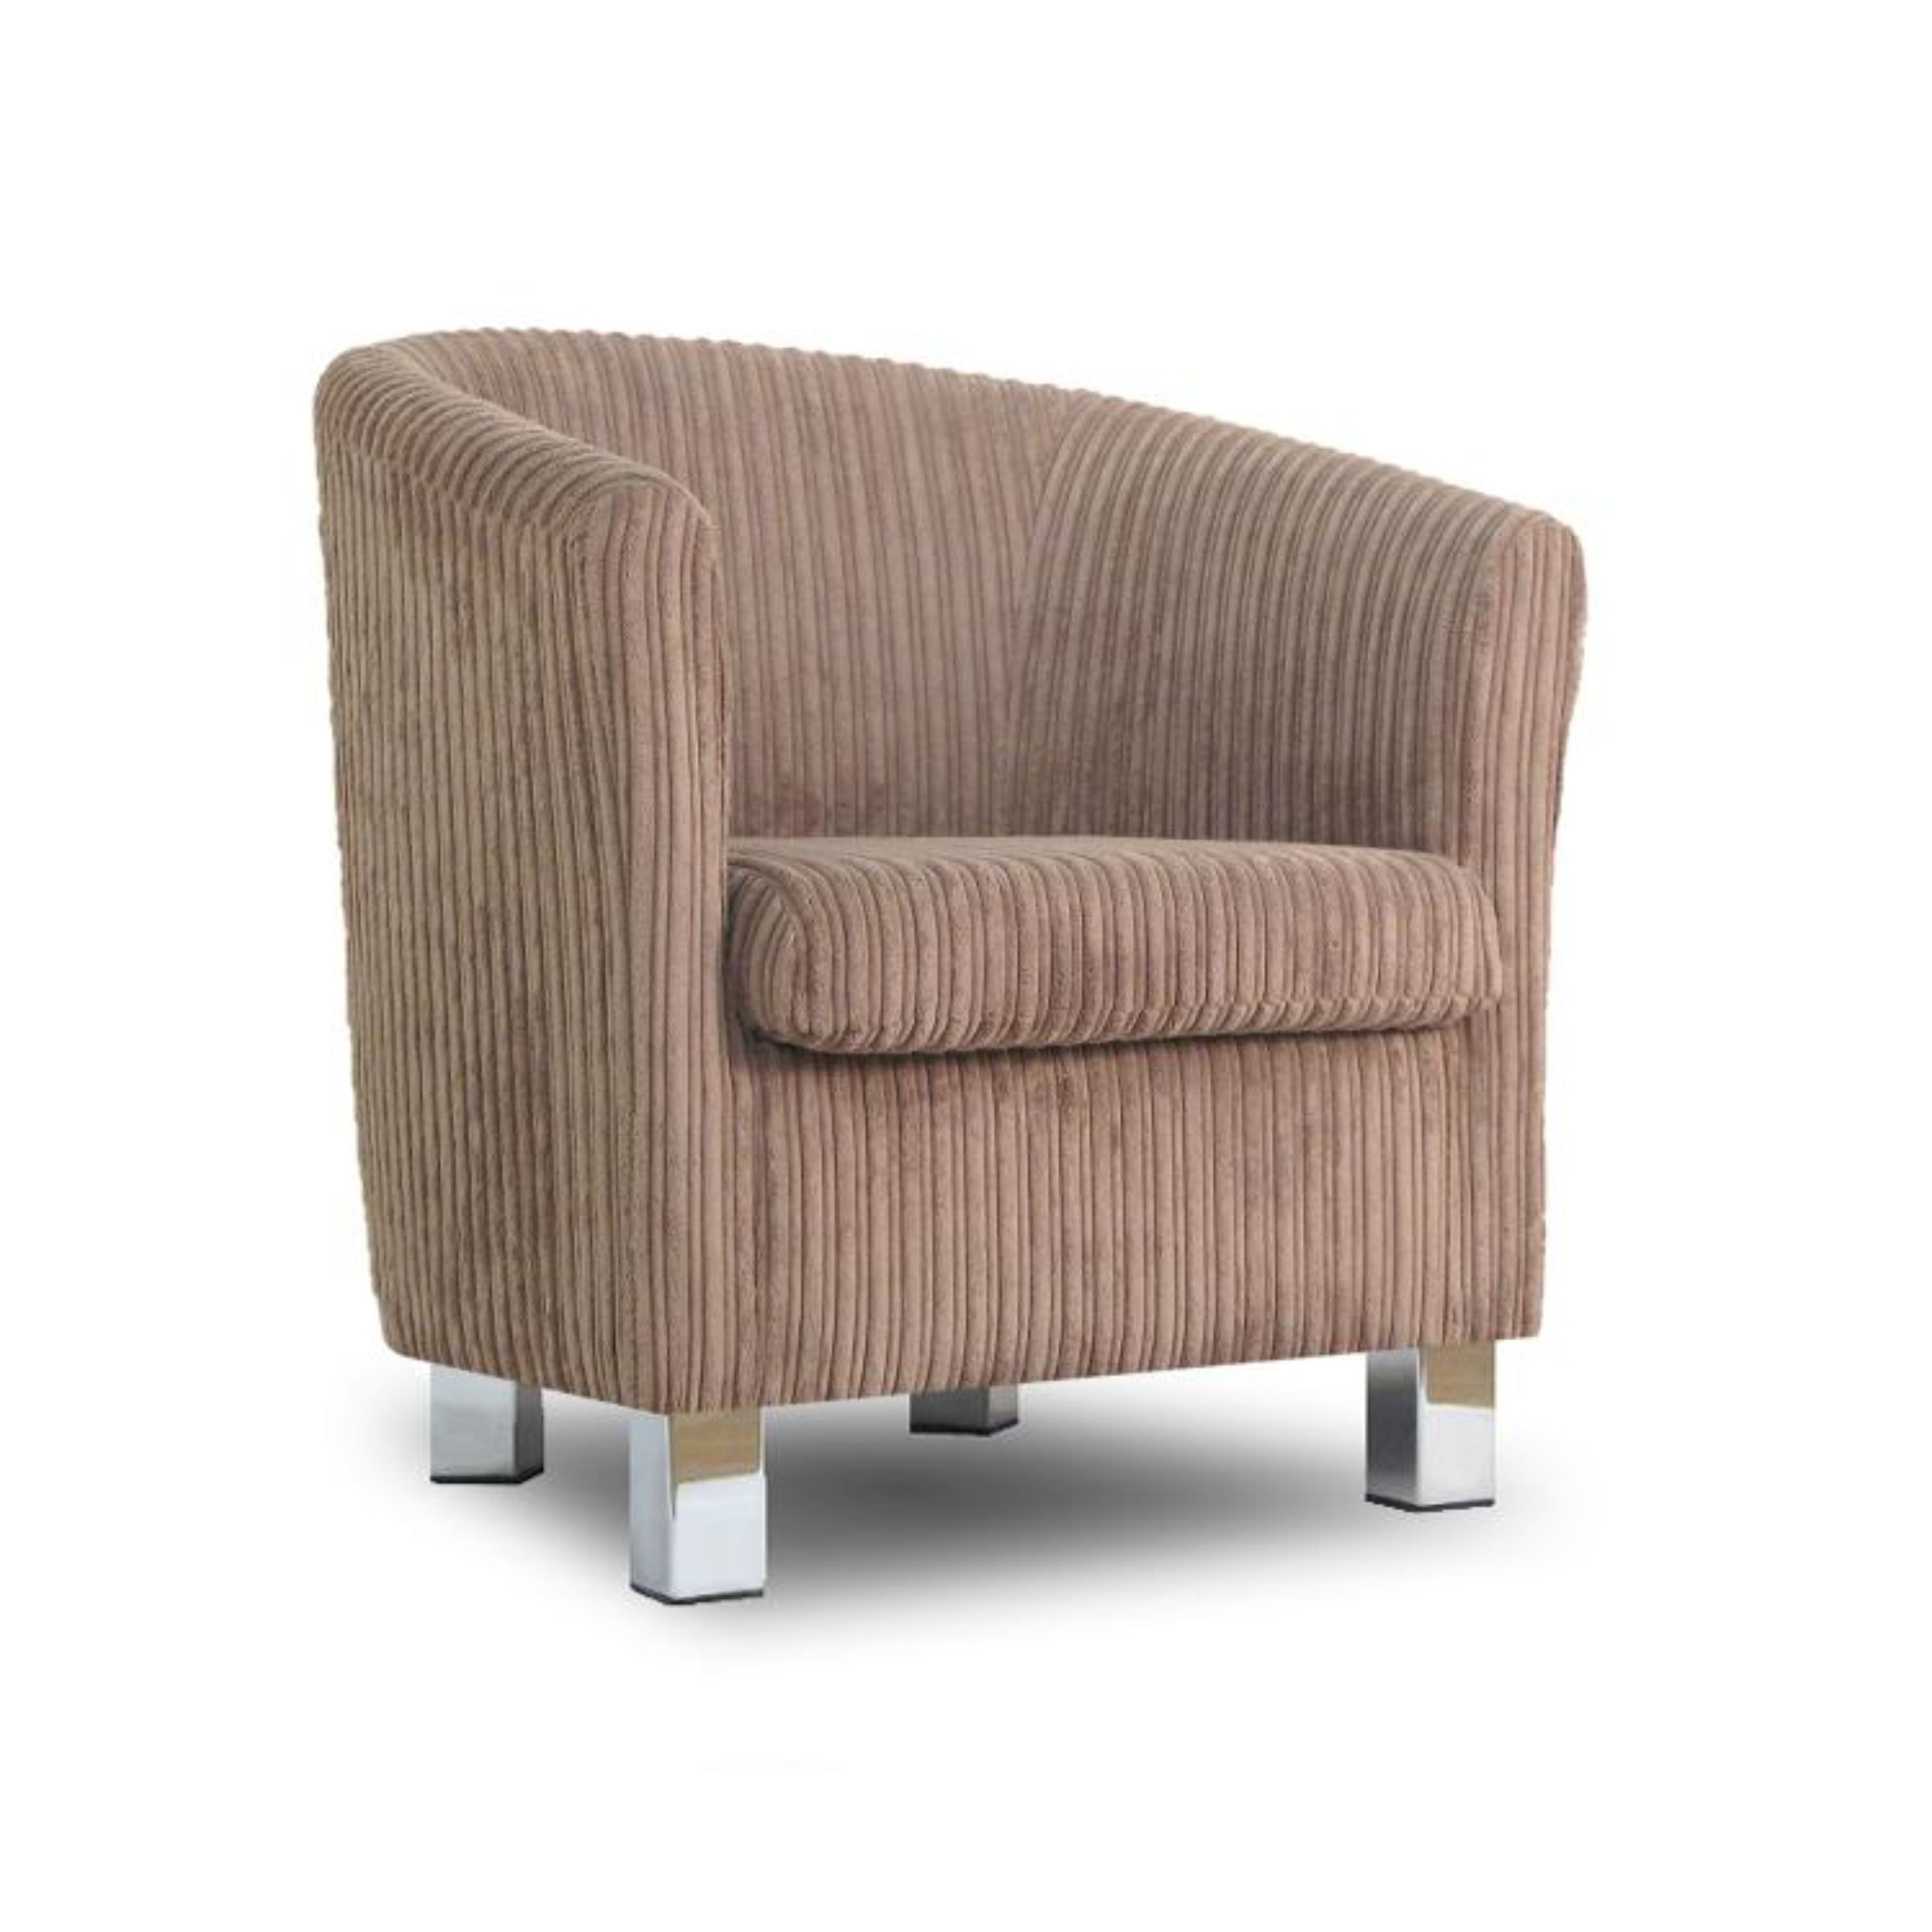 small fabric sofa tub chair jumbo cord sable chrome legs 17210 | small fabric sofa tub chair jumbo cord 4 1200x1200